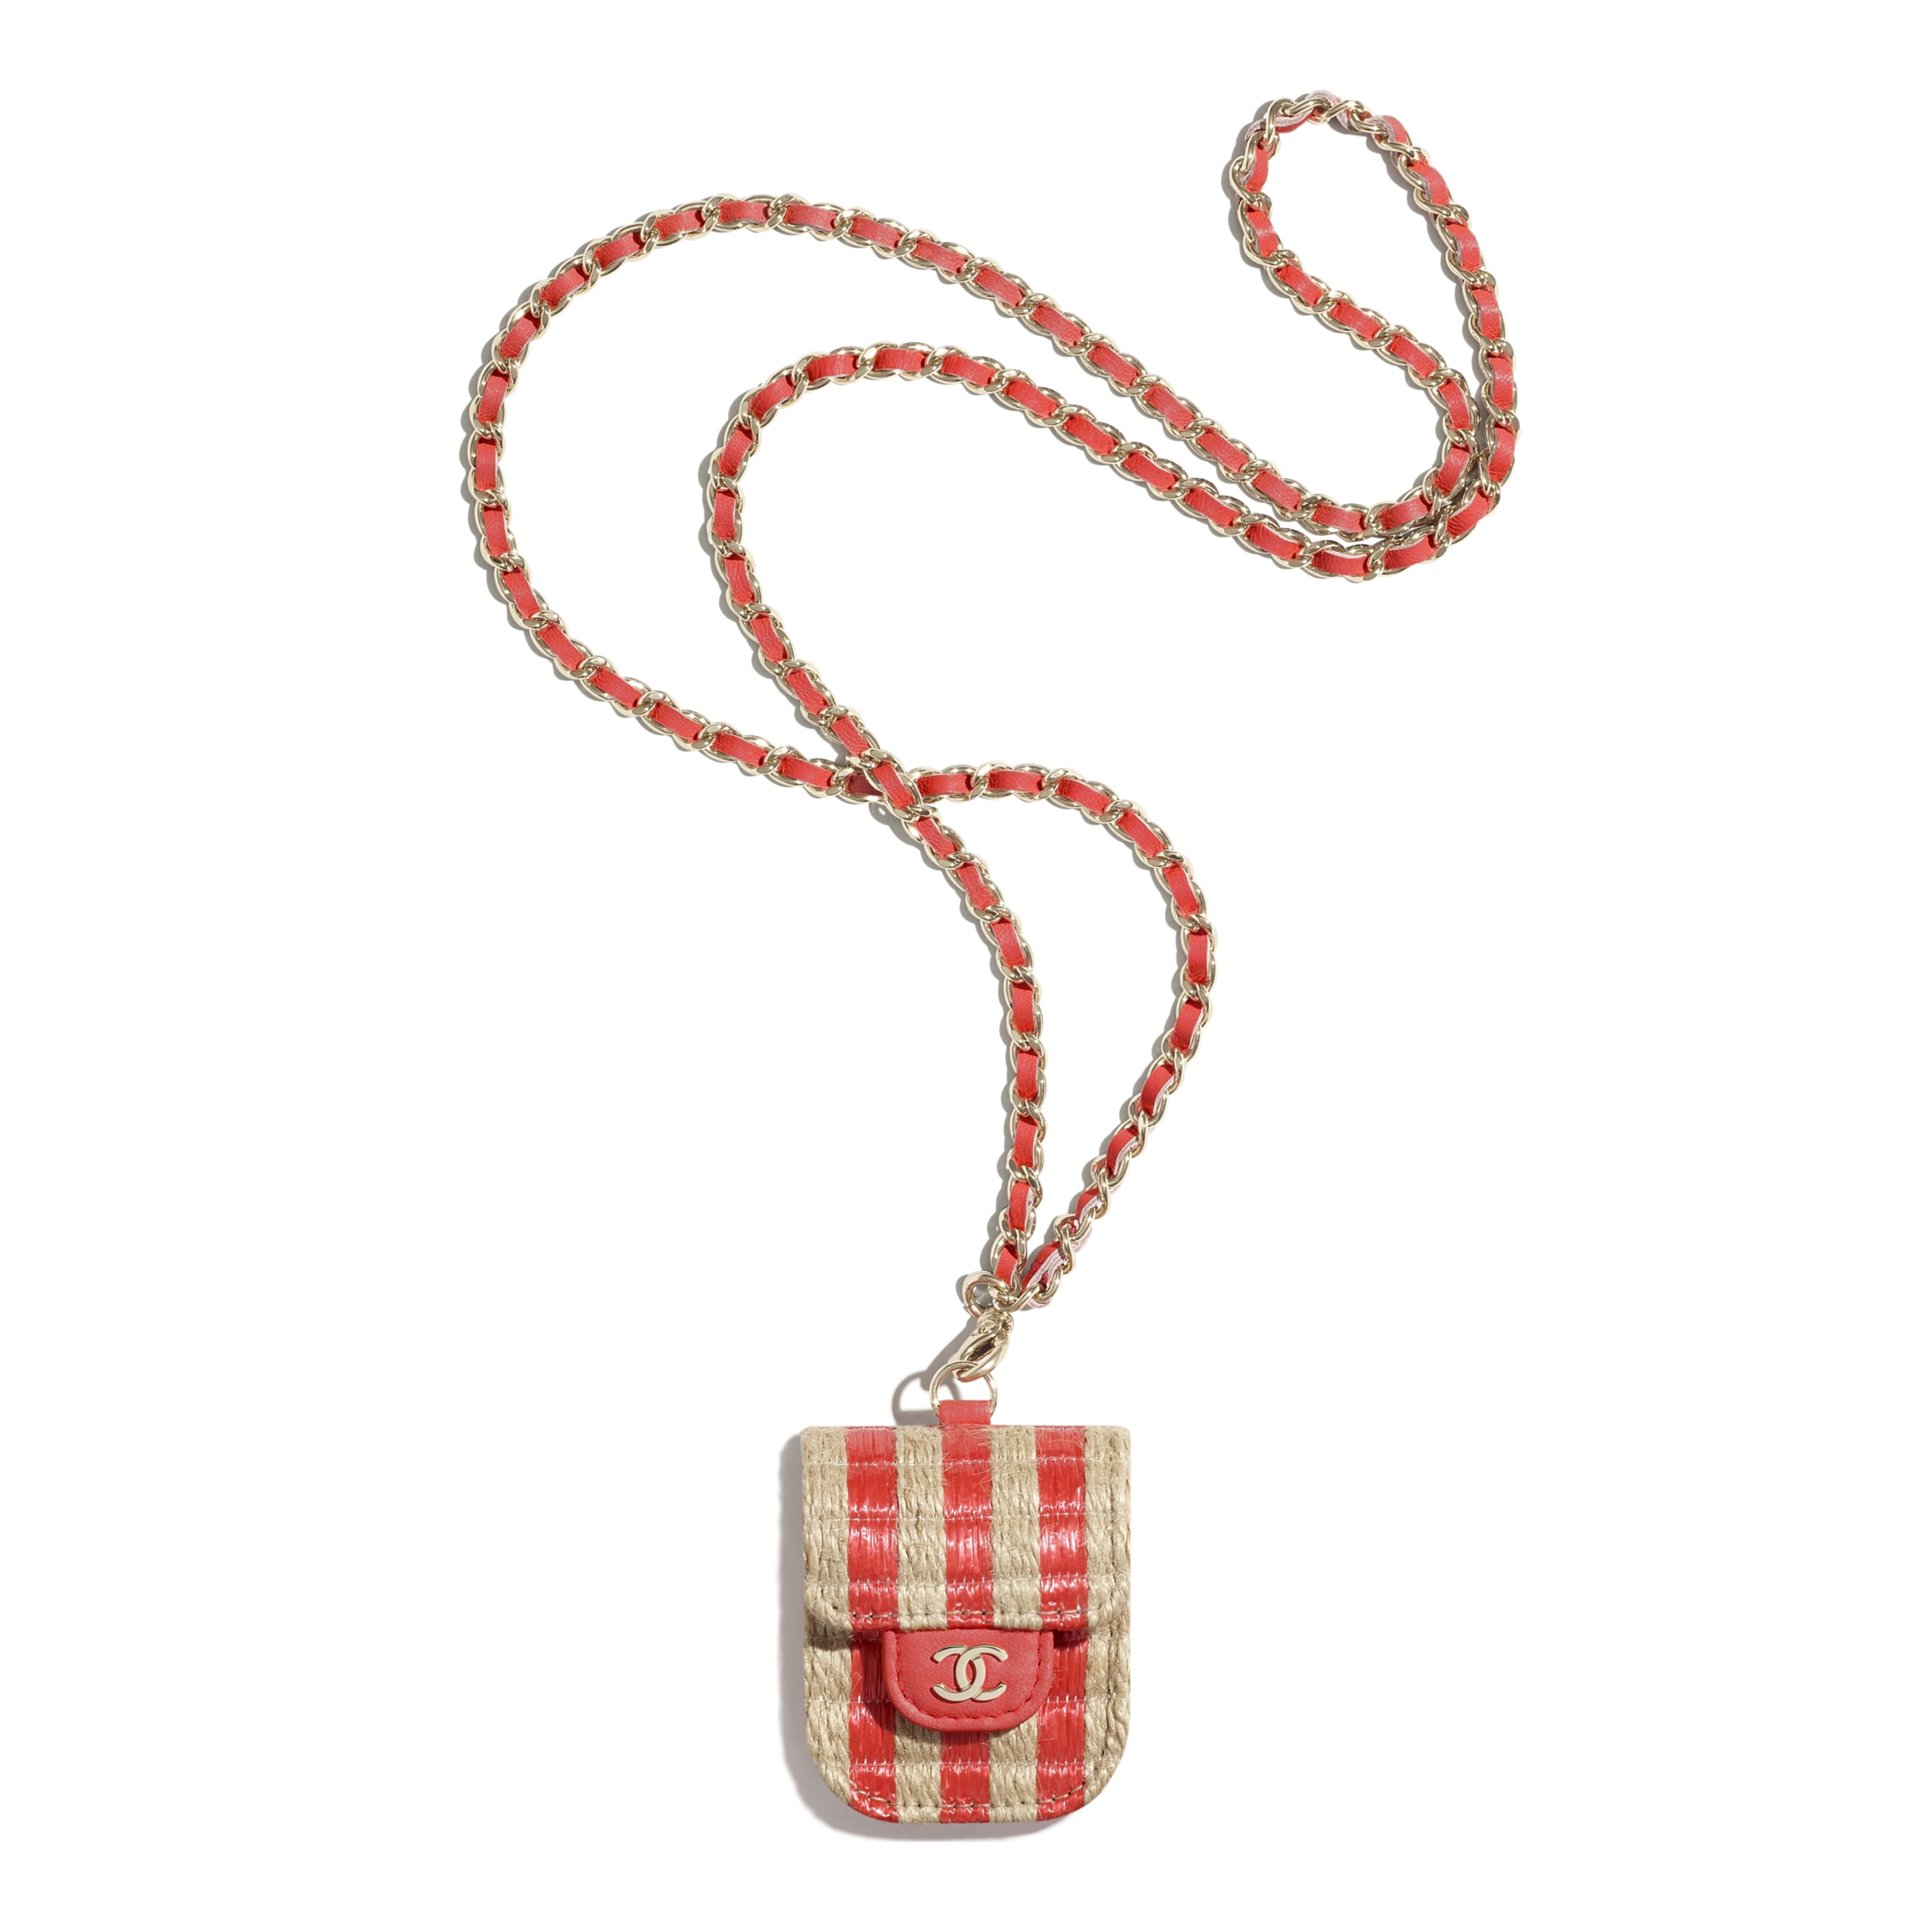 AirPods Case - Red & Beige - Raffia, Jute Thread & Gold-Tone Metal - CHANEL - Default view - see standard sized version